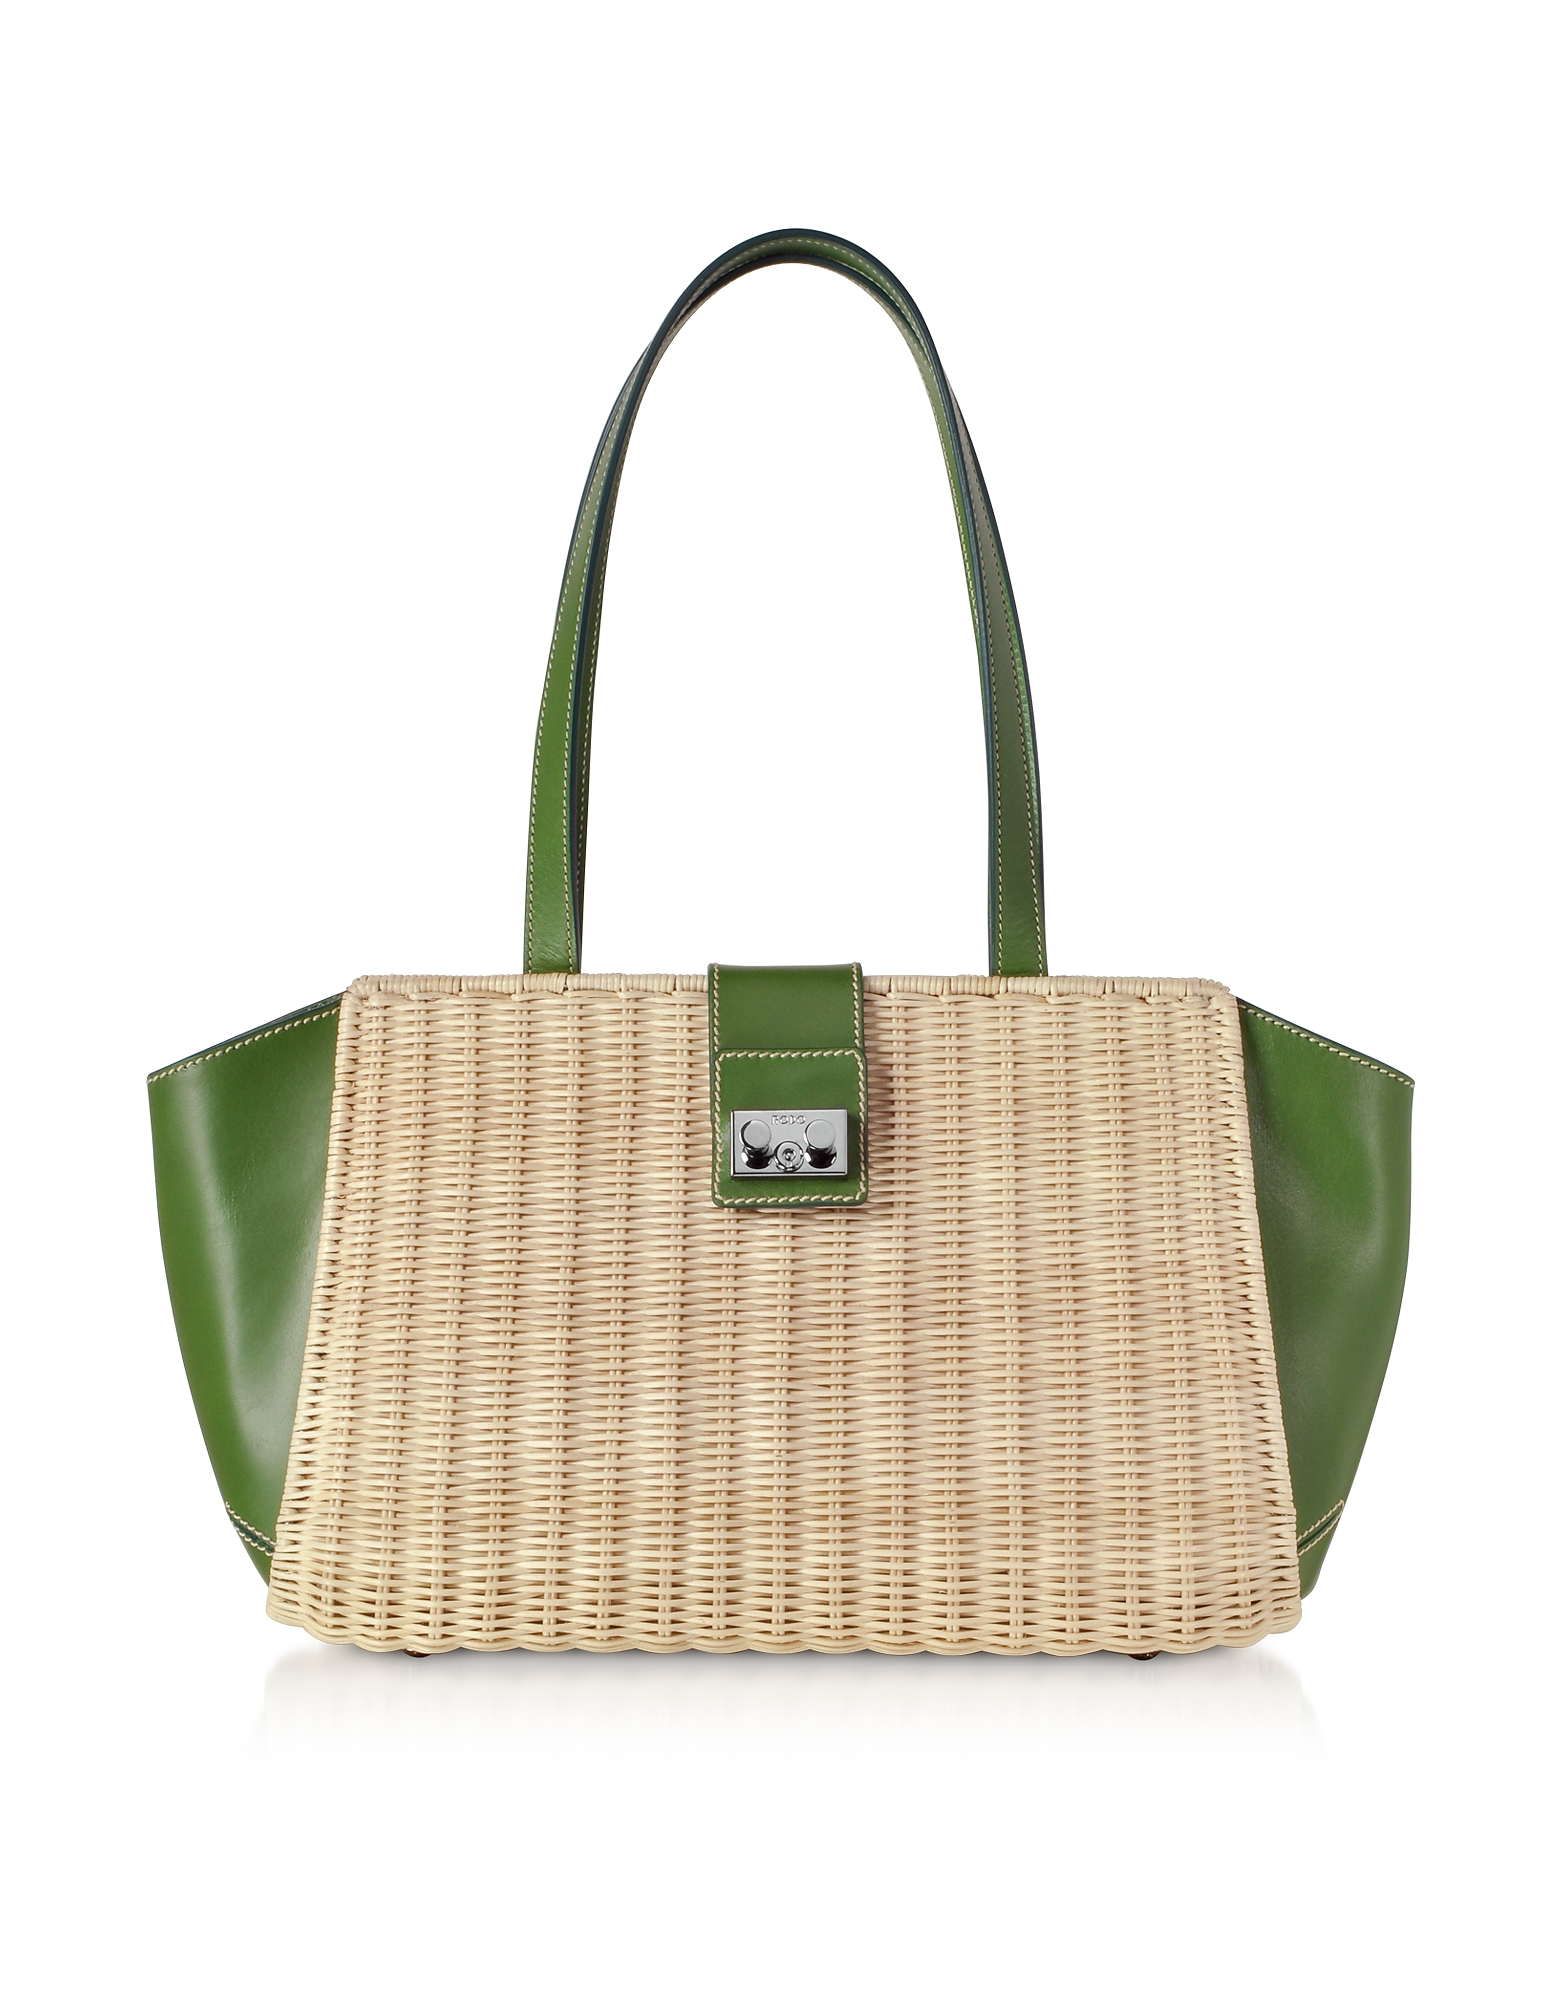 Whitewashed Wicker and Leather Trapeze Tote Bag